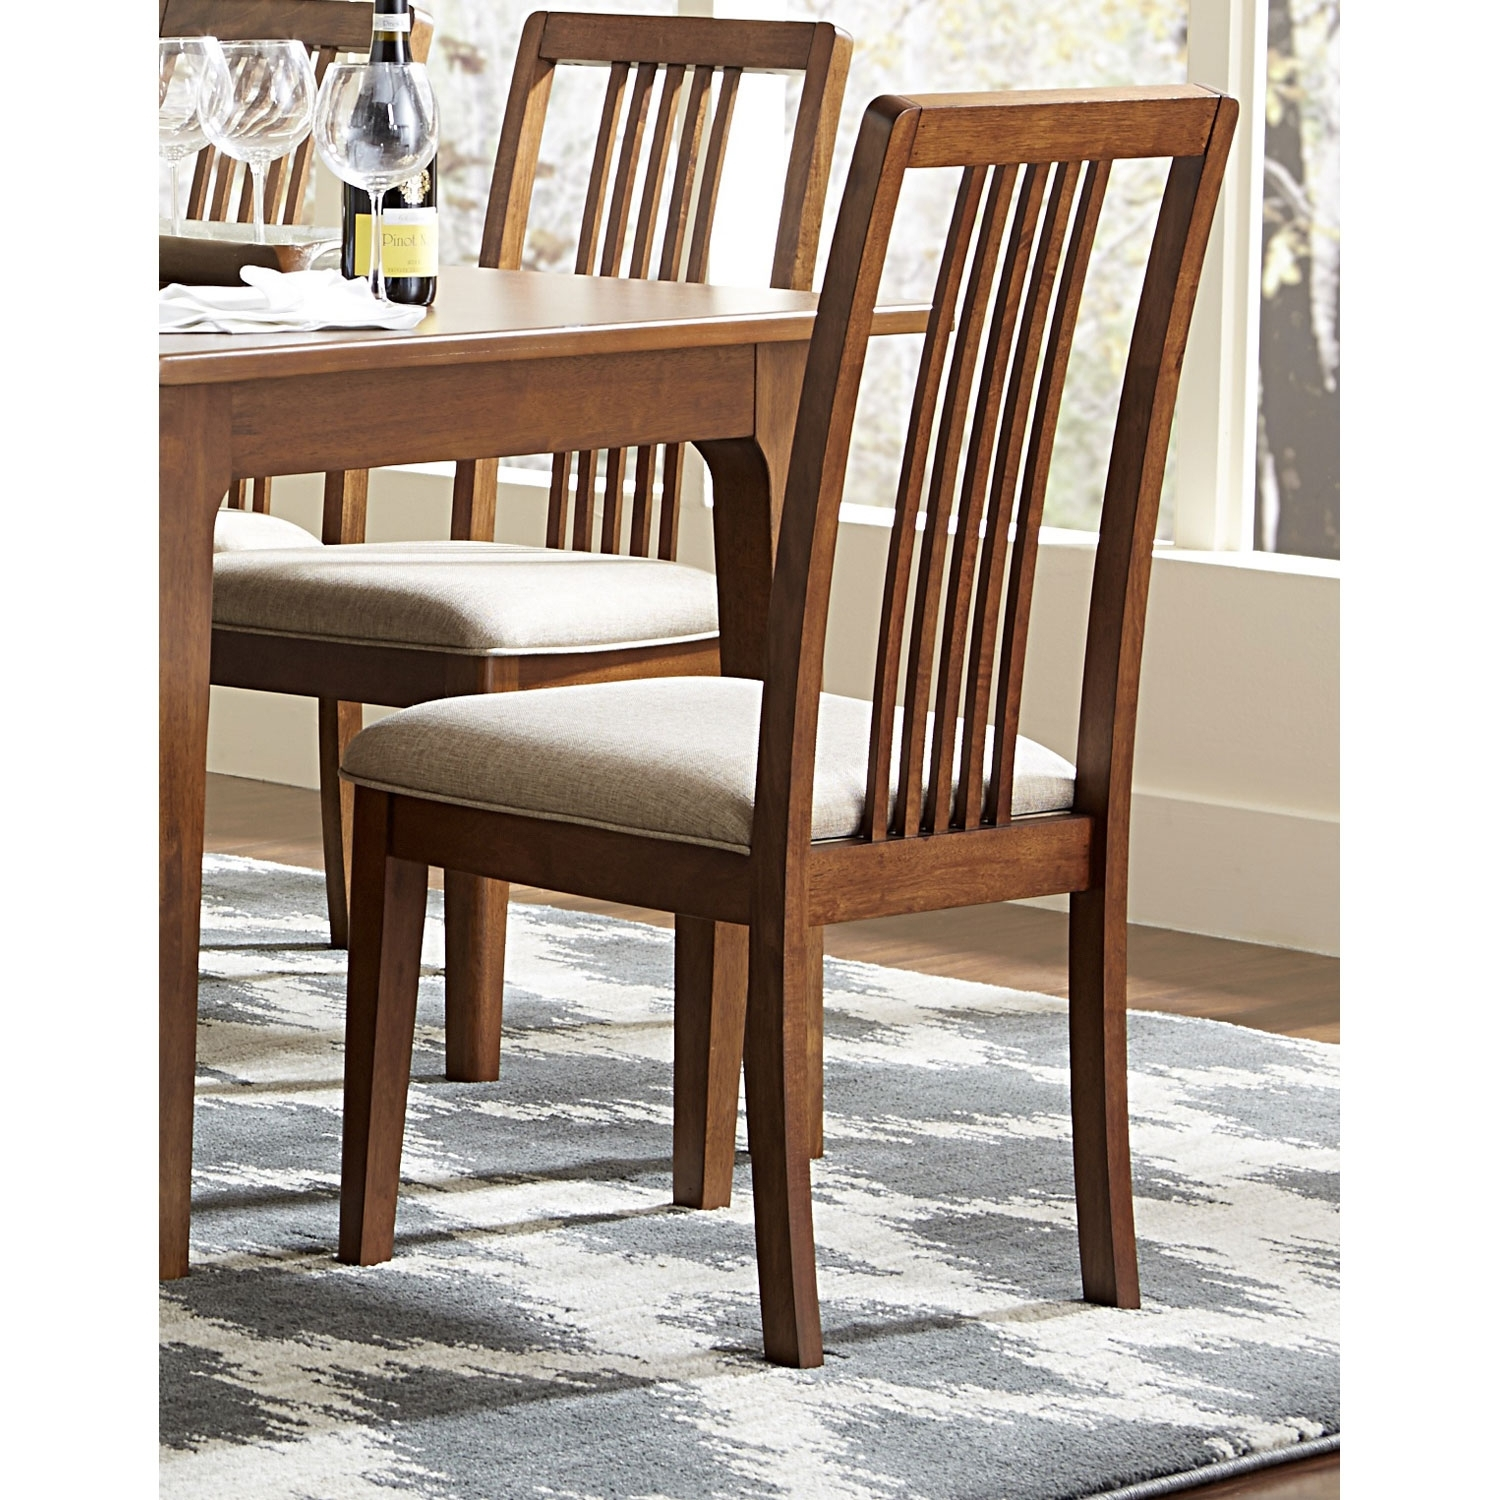 Progressive Furniture Mid Mod Tallback Upholstered Dining Chairs For 2019 Pinot Side Chairs (#18 of 20)